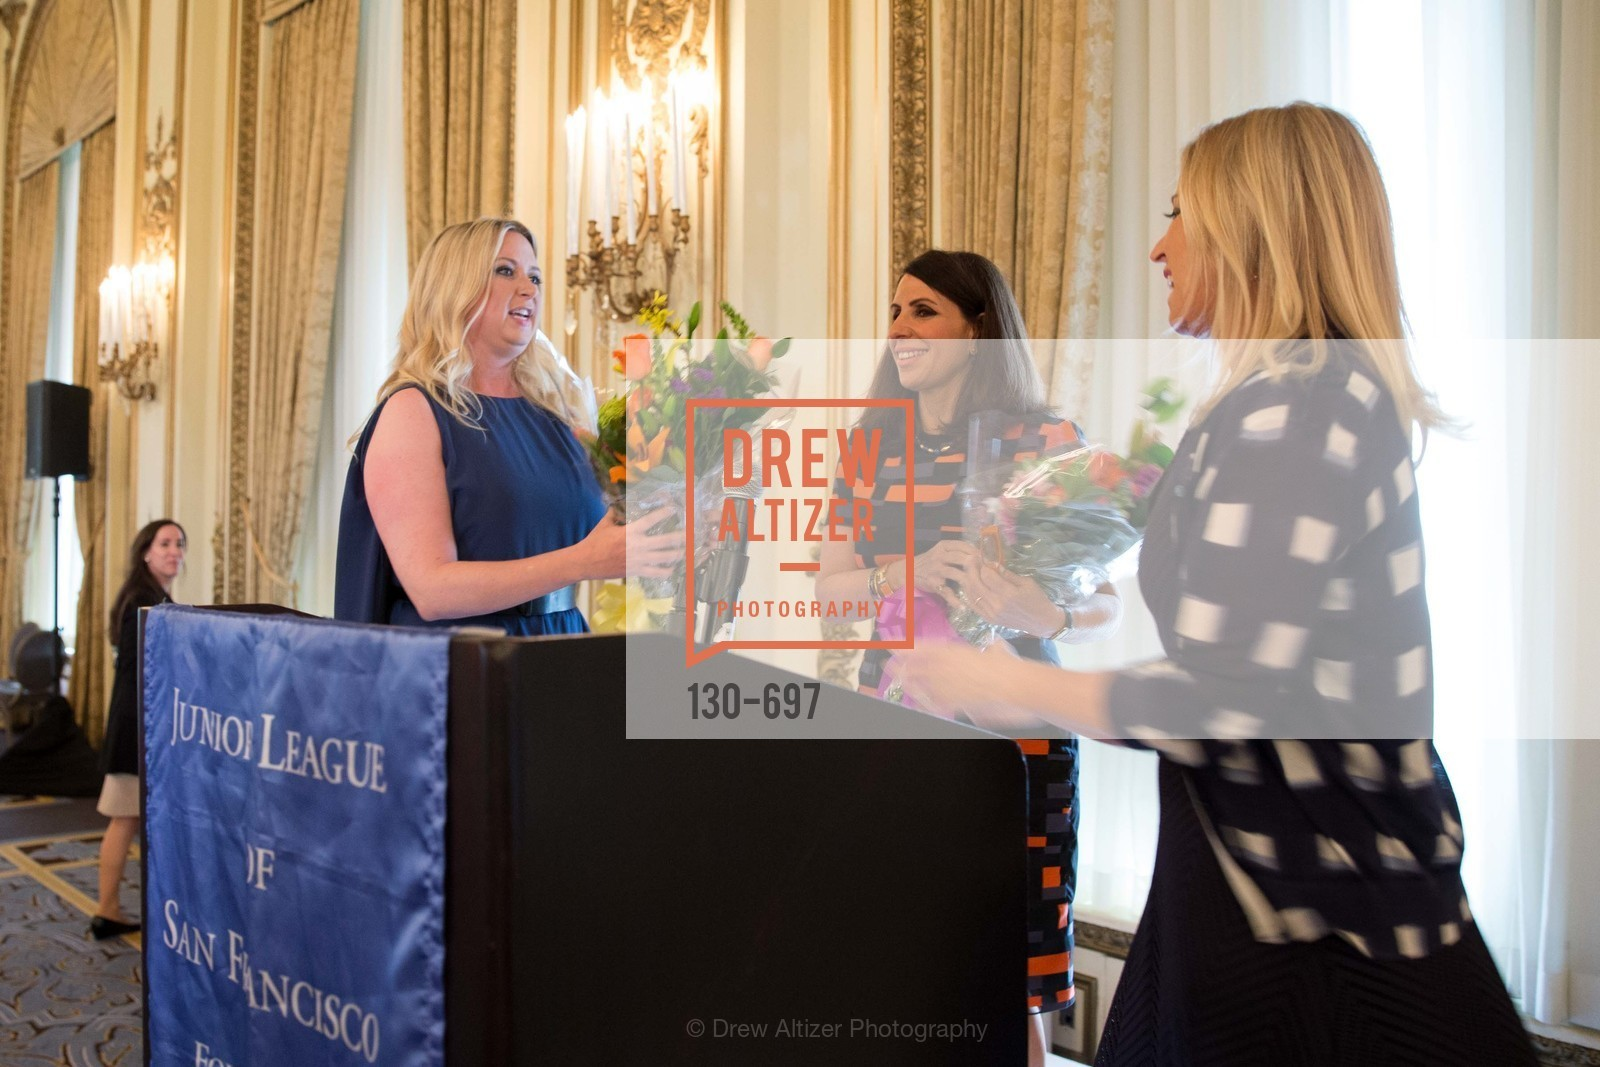 Jennifer Kurrie, Lisa Grotts, Jane Inch, JUNIOR LEAGUE OF SAN FRANCISCO's WATCH Luncheon, US, May 5th, 2015,Drew Altizer, Drew Altizer Photography, full-service agency, private events, San Francisco photographer, photographer california